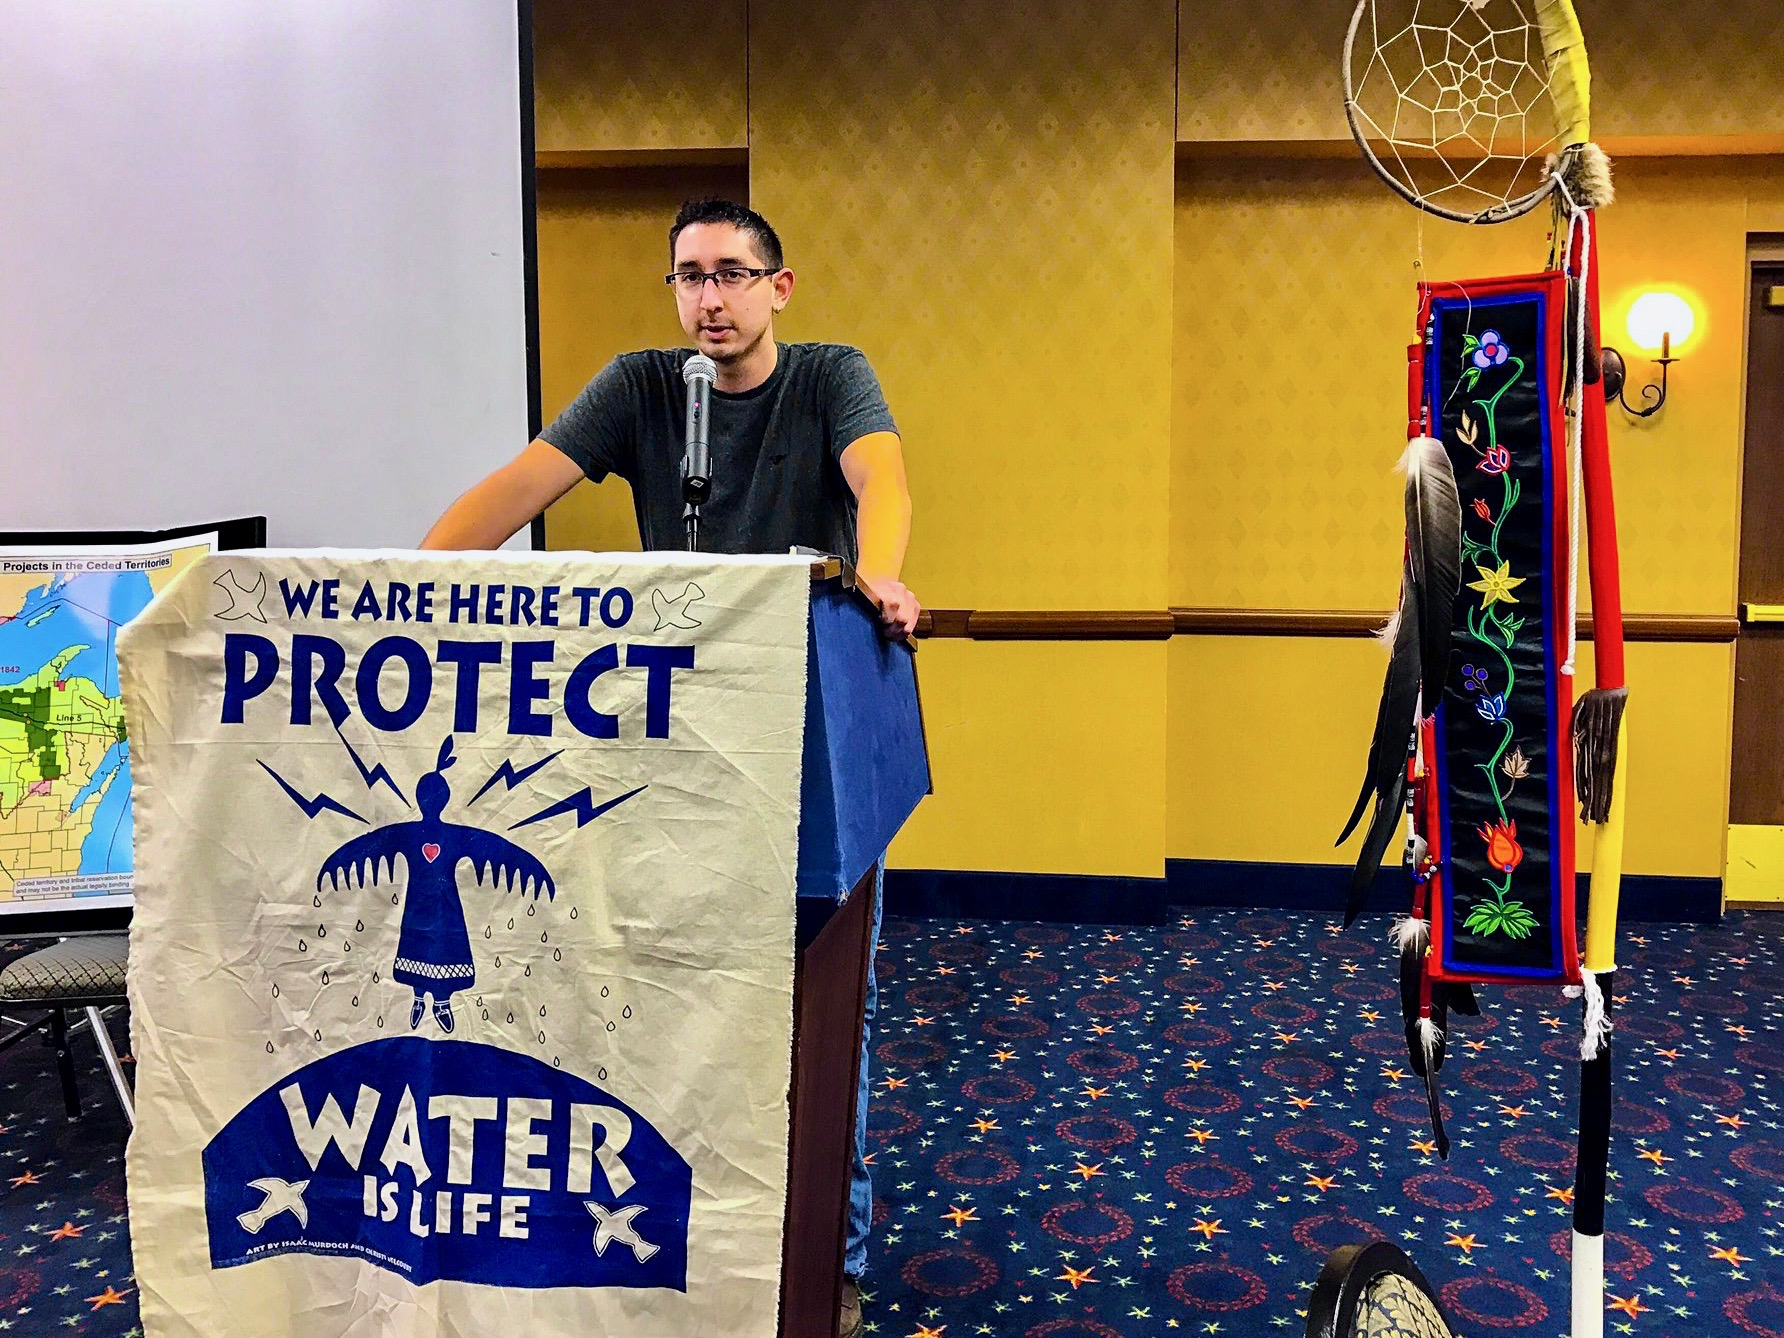 Winona LaDuke: Water protectors are still standing strong all over